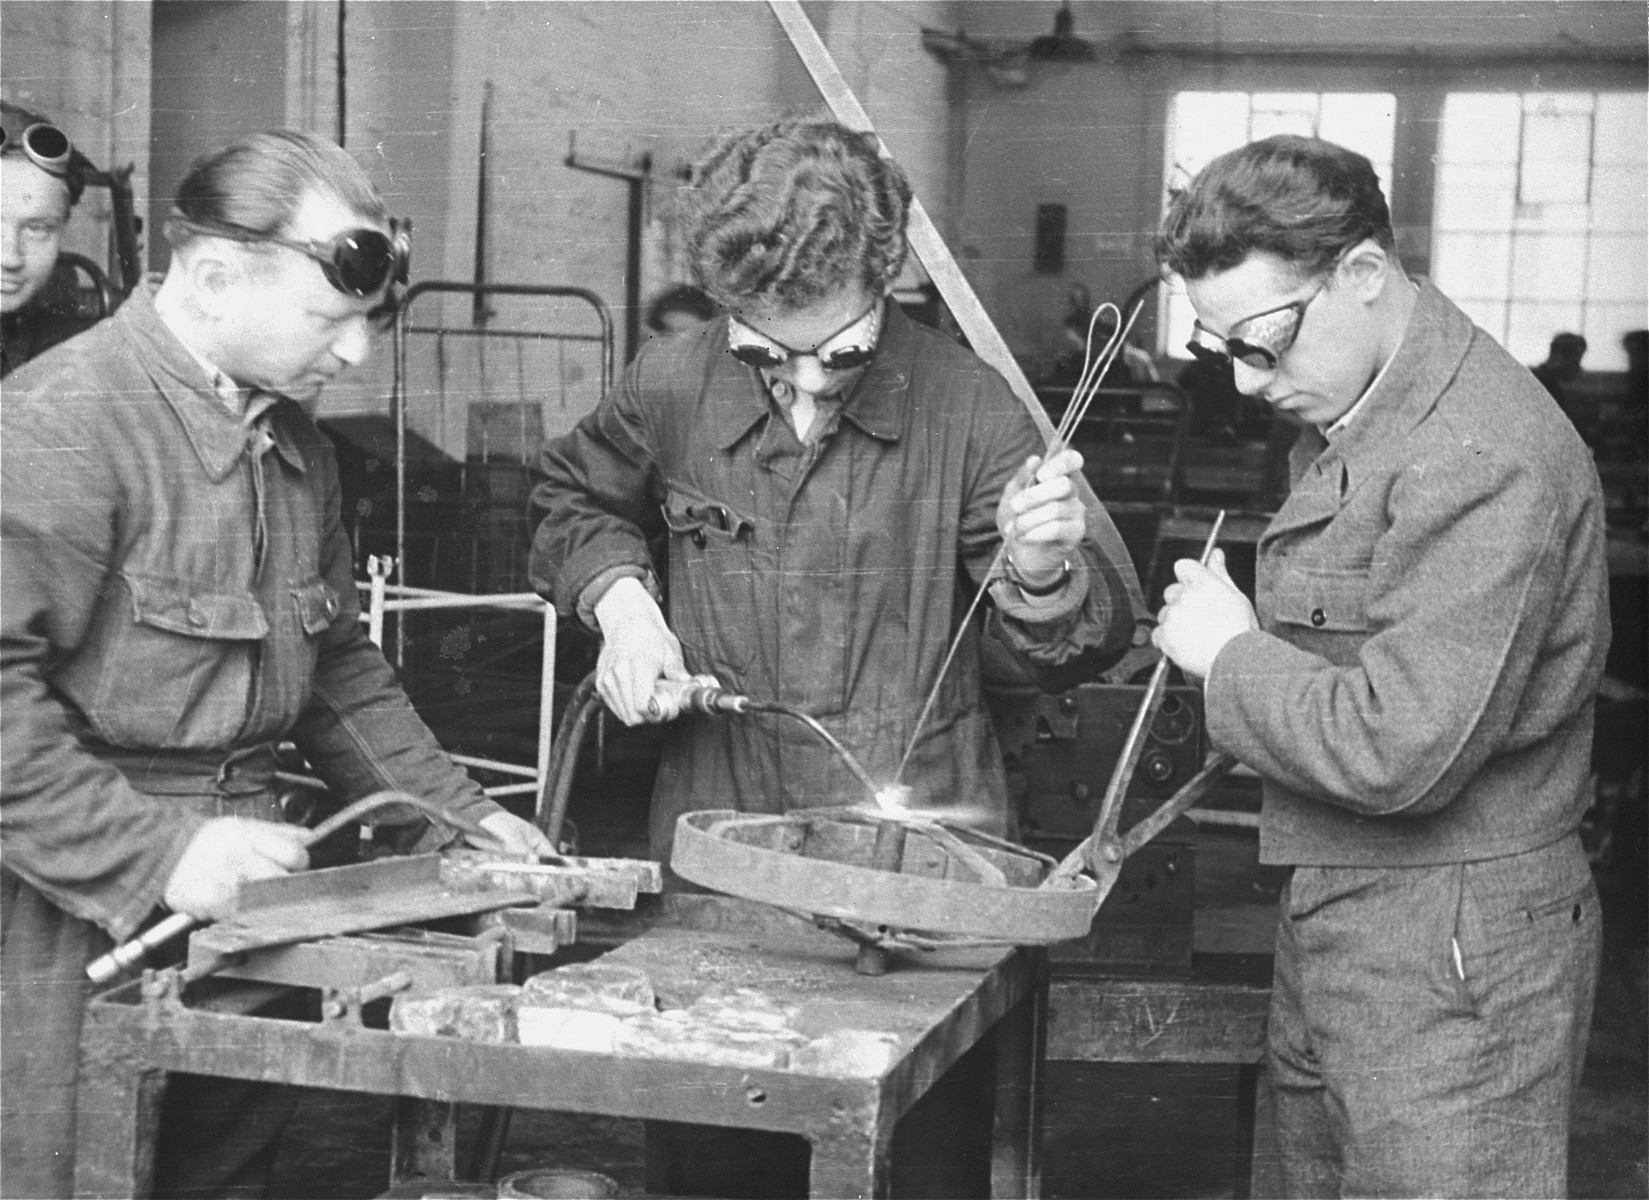 Three men practice welding in an ORT (Organization for Rehabilitation through Training) vocational training program in the Landsberg displaced persons' camp. [Oversized print]